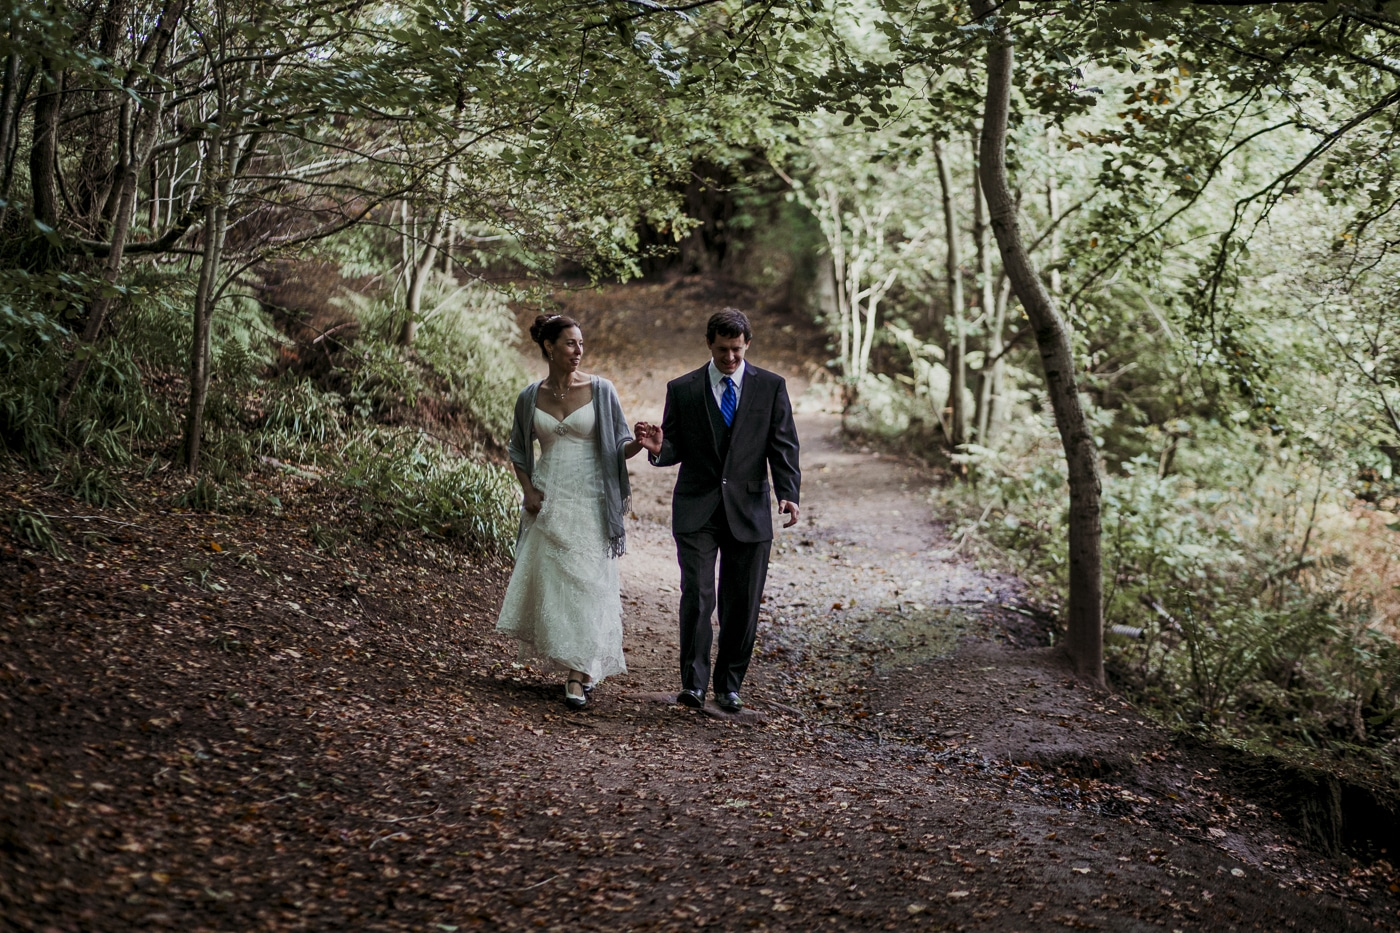 Holding hands through the forest for wedding by Joshua Wyborn photographic